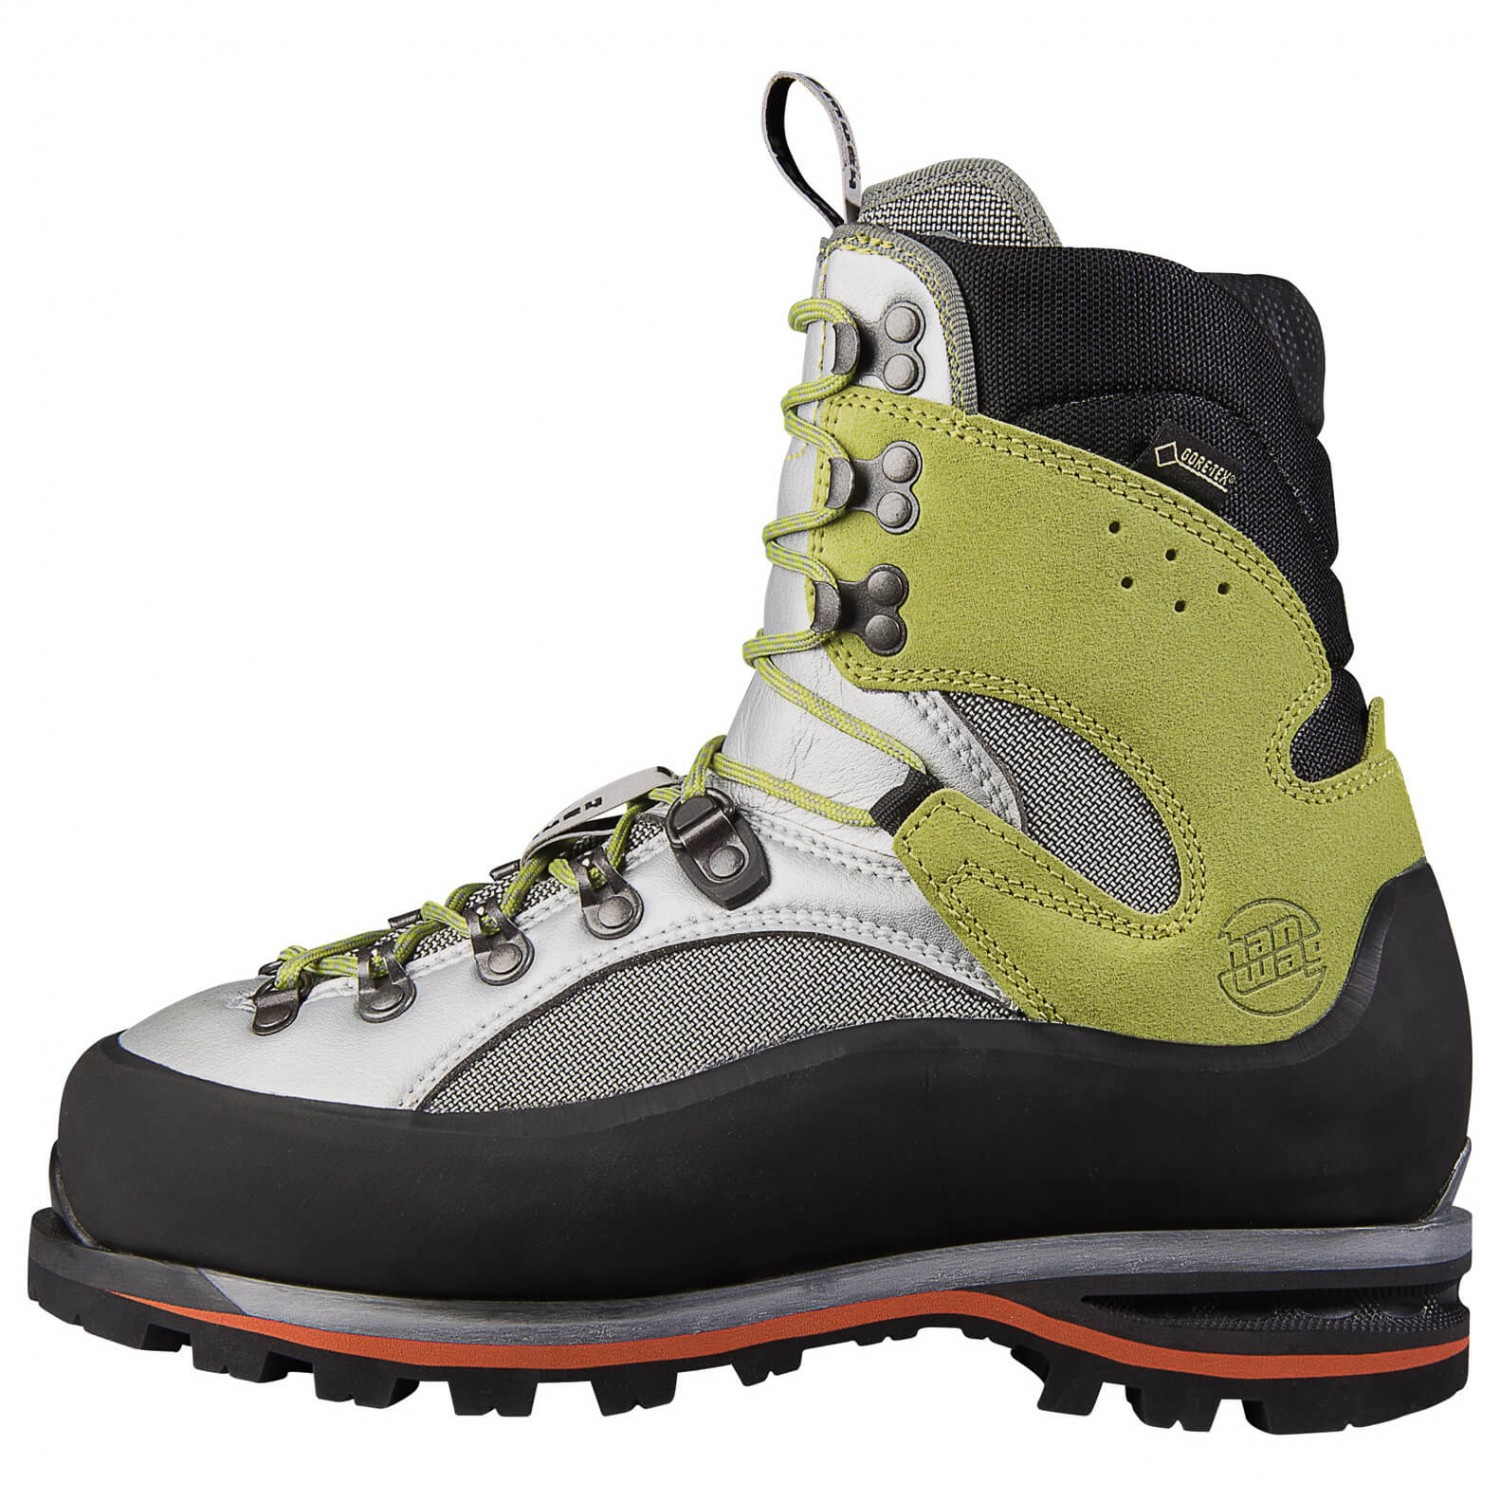 Hanwag Men's Eclipse GTX